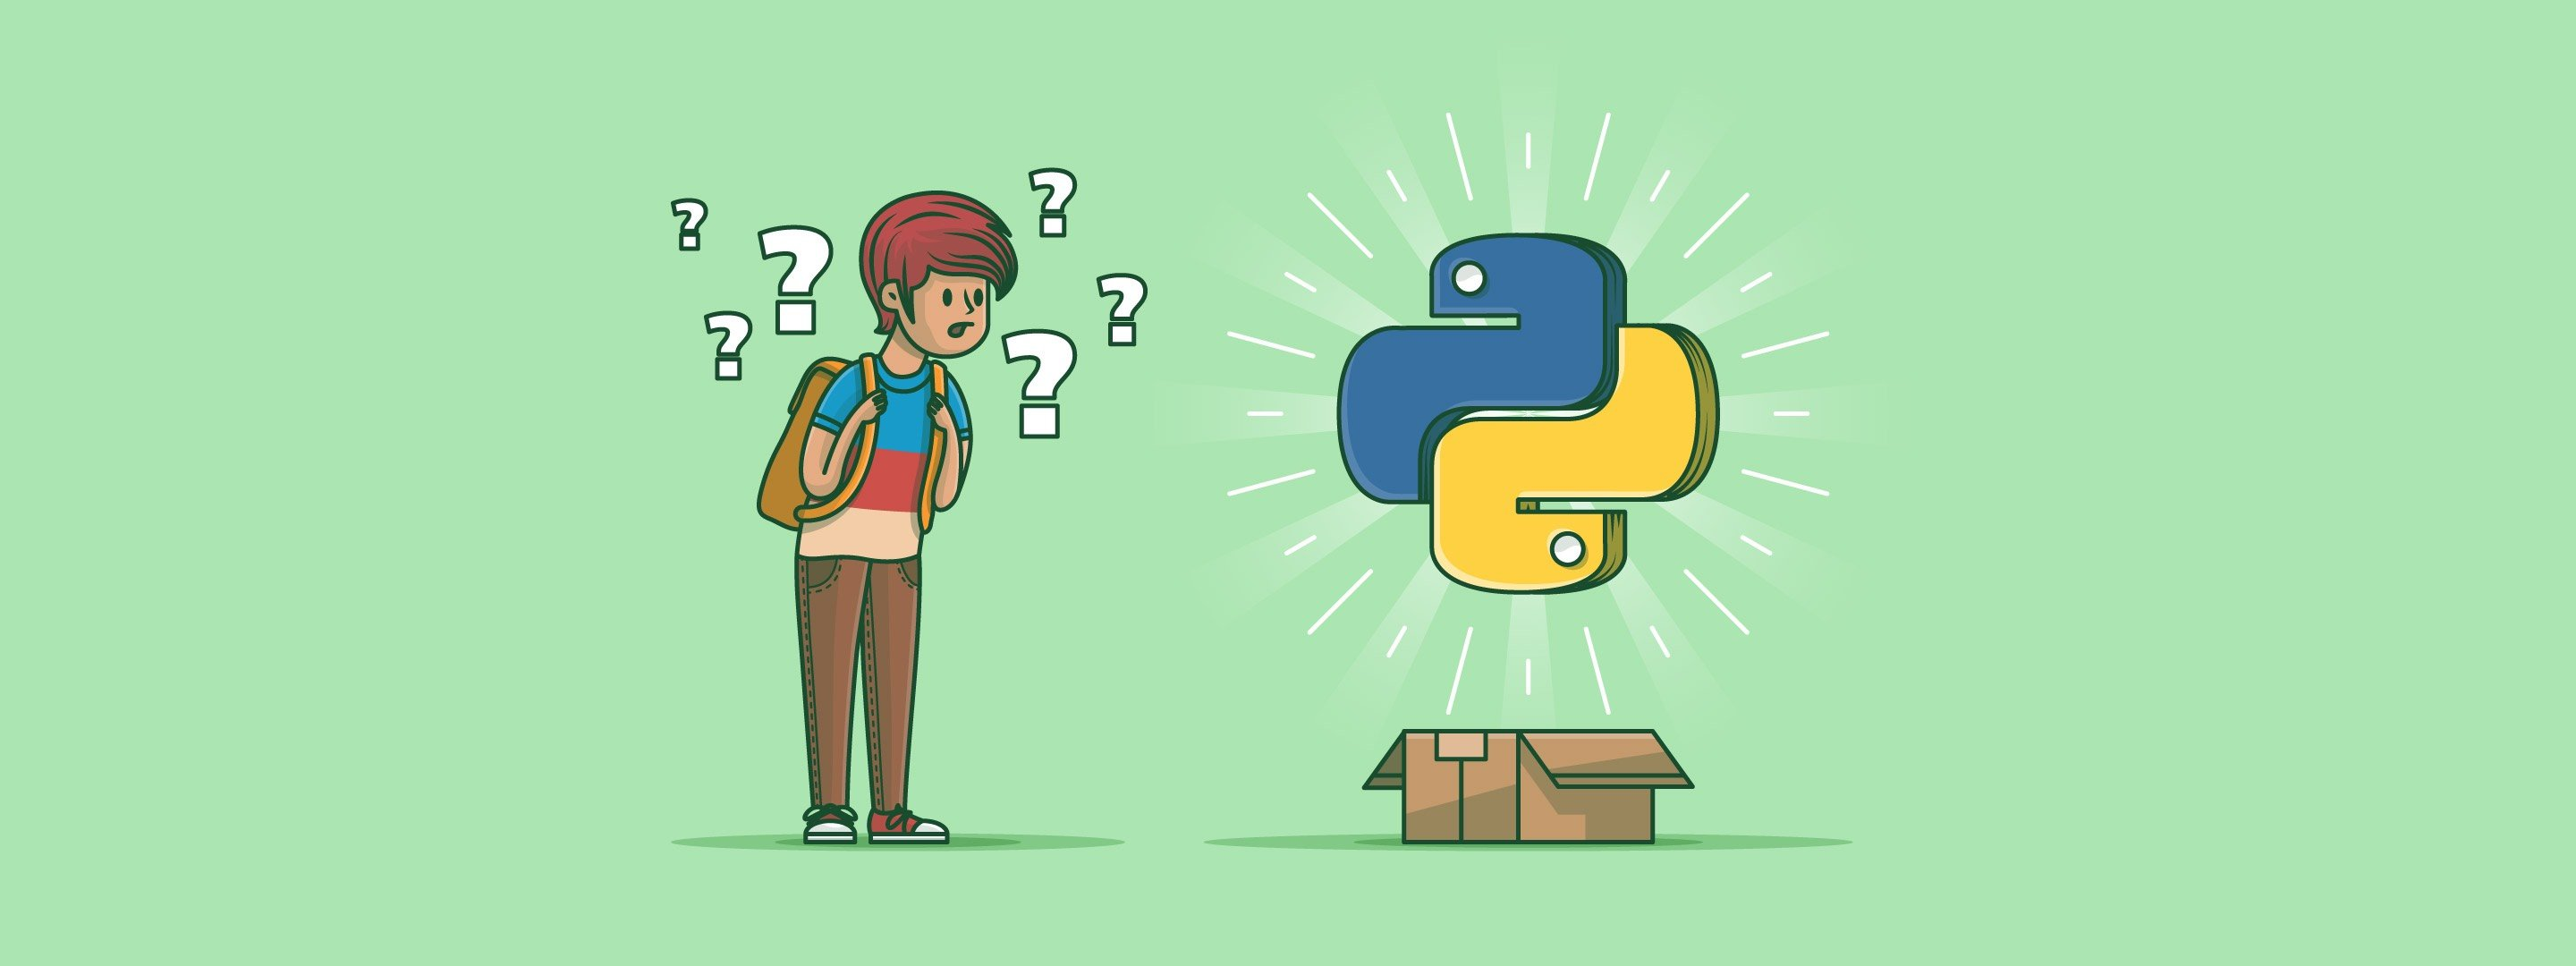 Is this how you felt when CBSE introduced Python ?